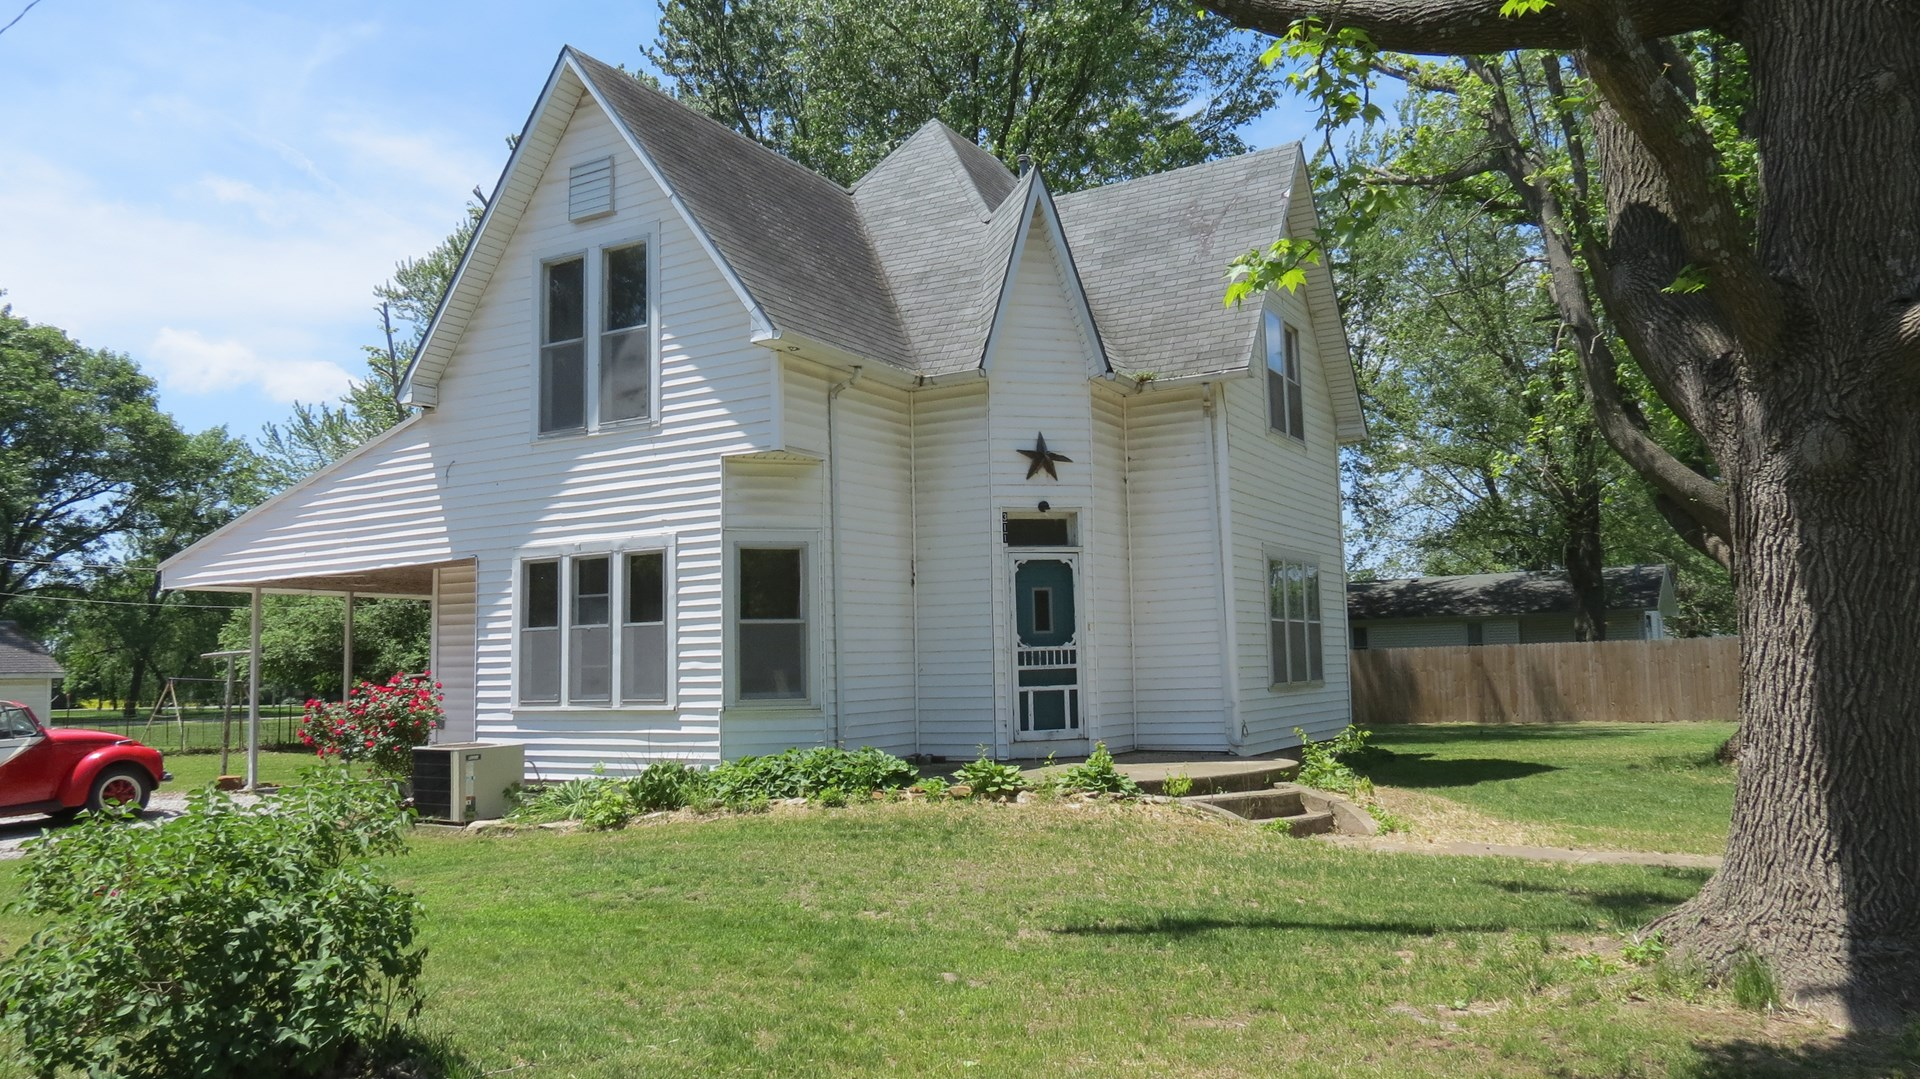 Home for Sale in Lockwood, Mo